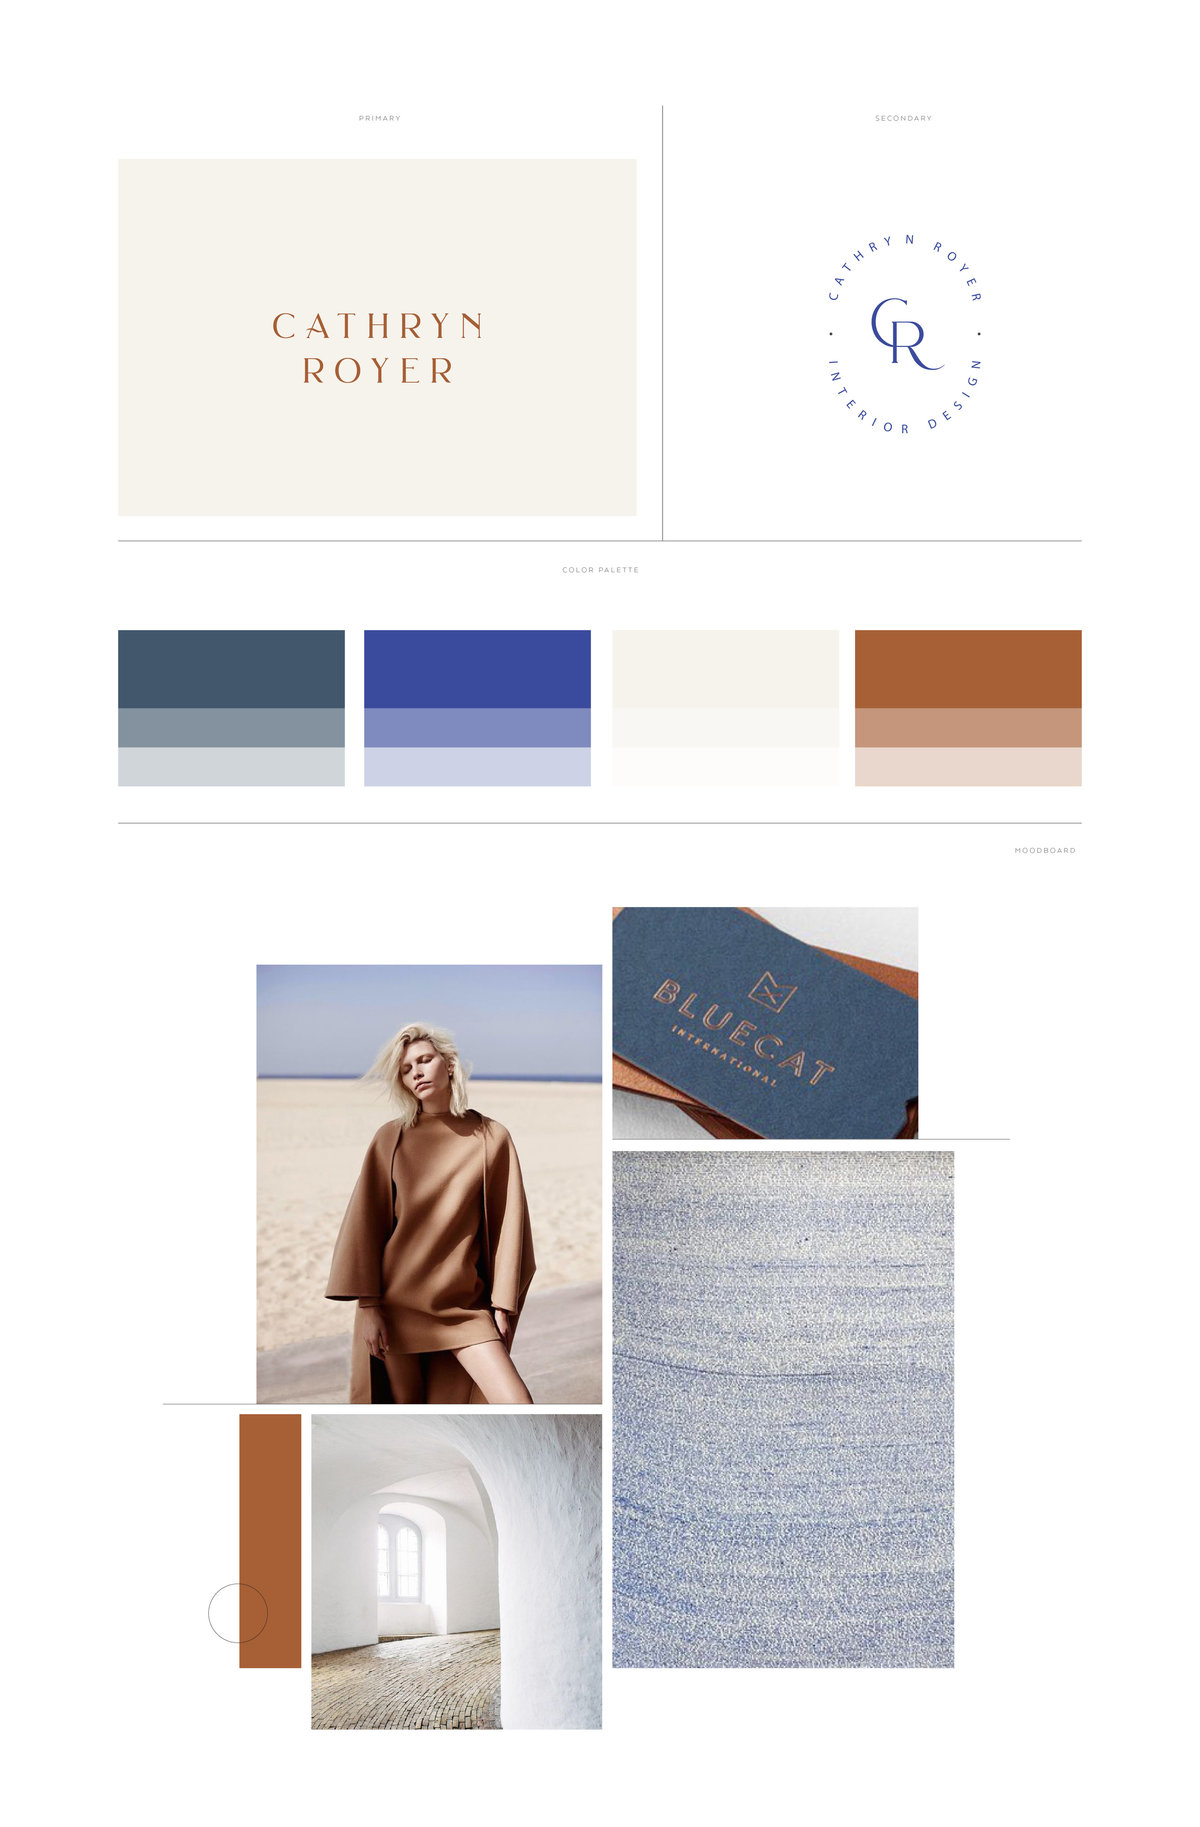 CATHRYNROYER_HONOR_BRANDBOARD_03